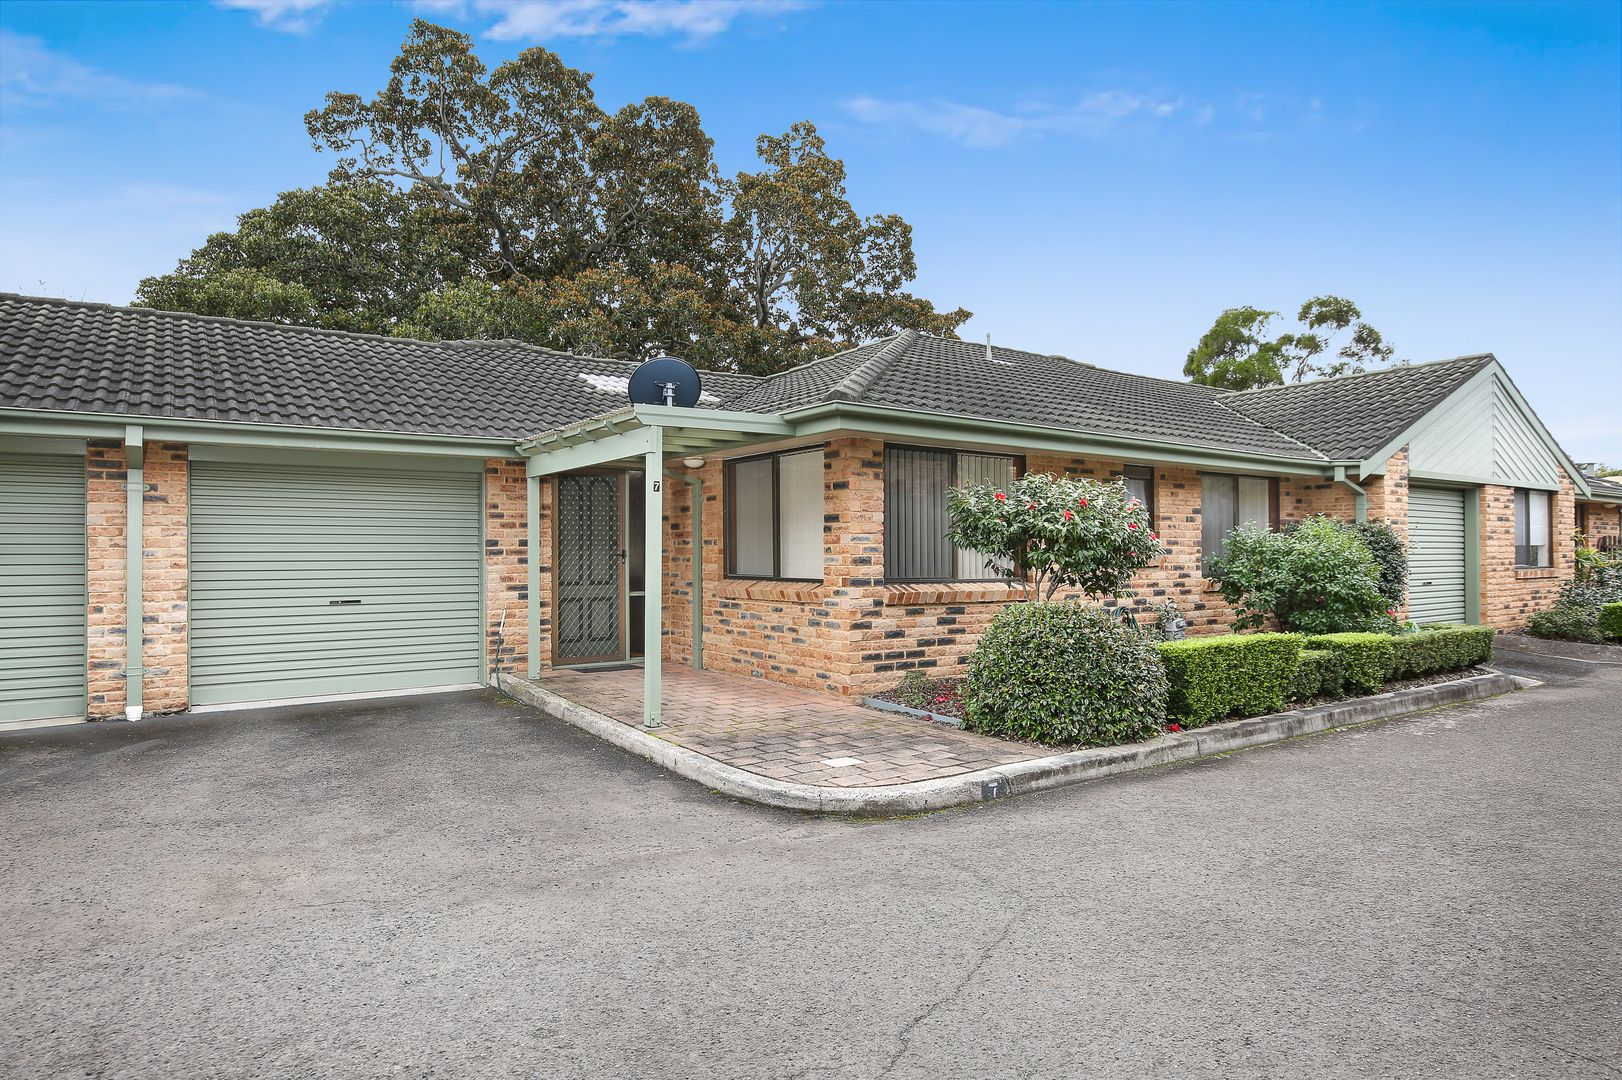 7/12-22 Gibsons Road, Figtree NSW 2525, Image 0